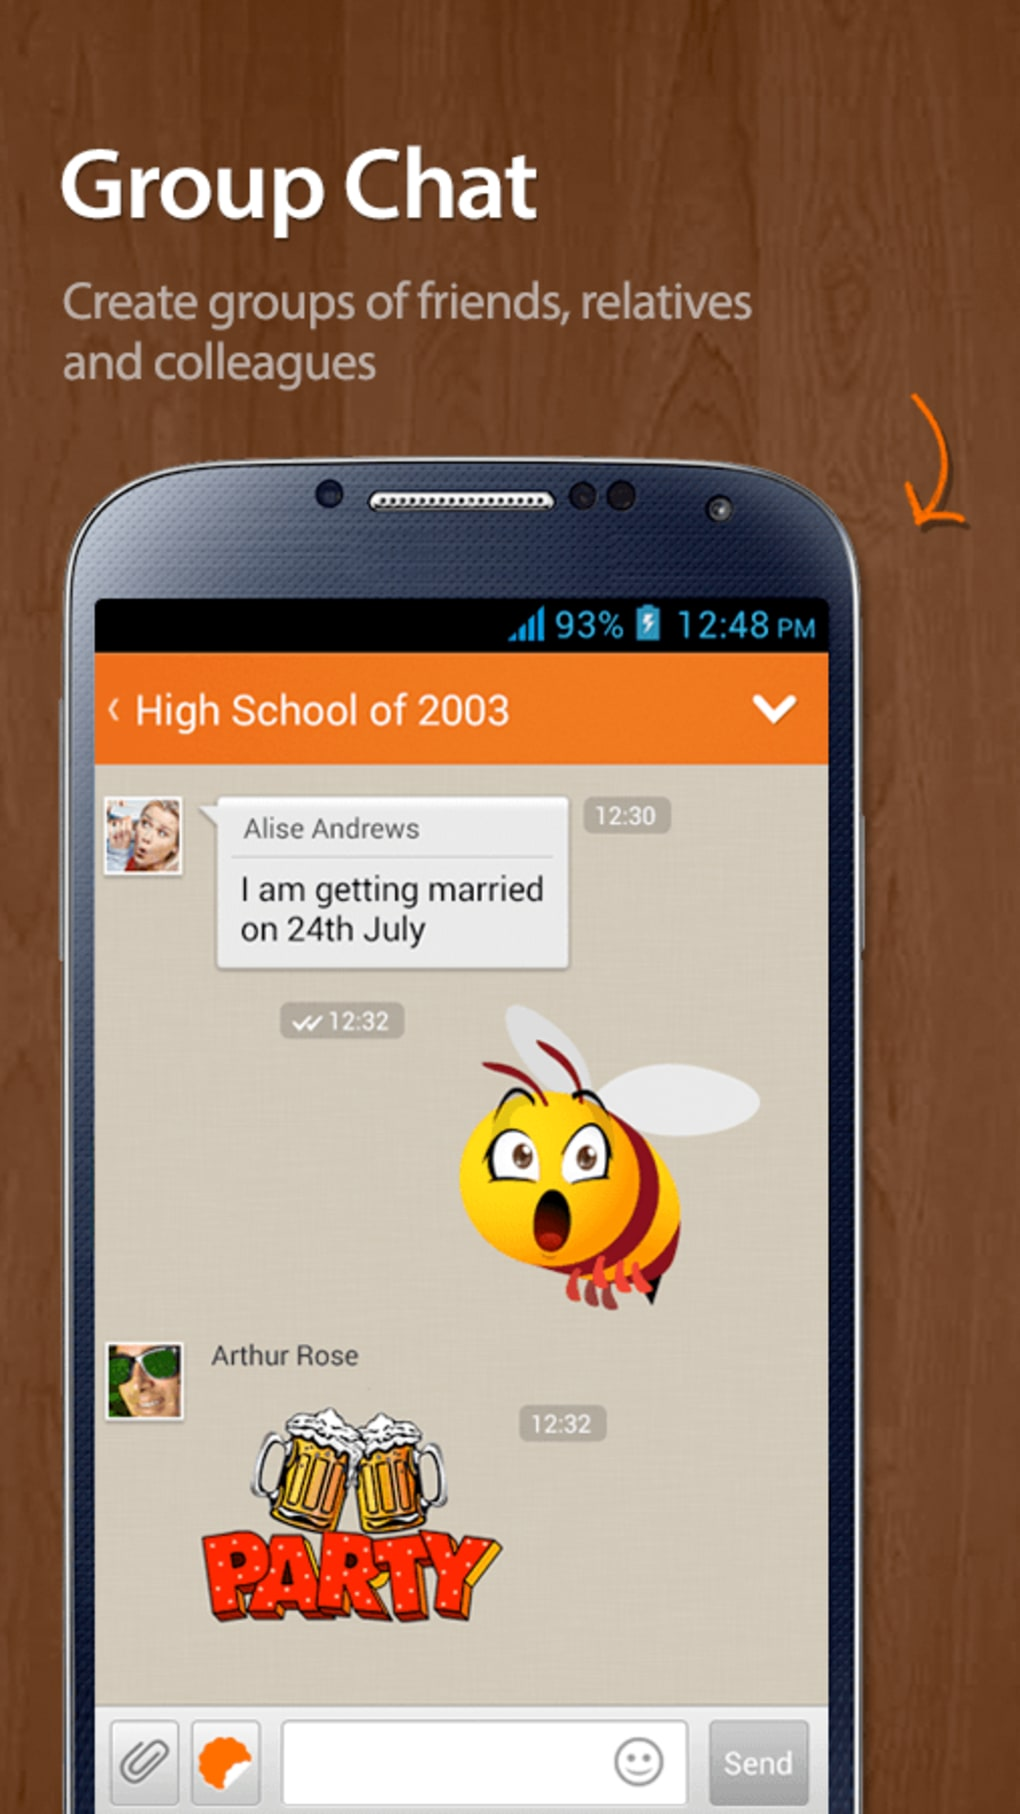 android 2.3 apps apk free download